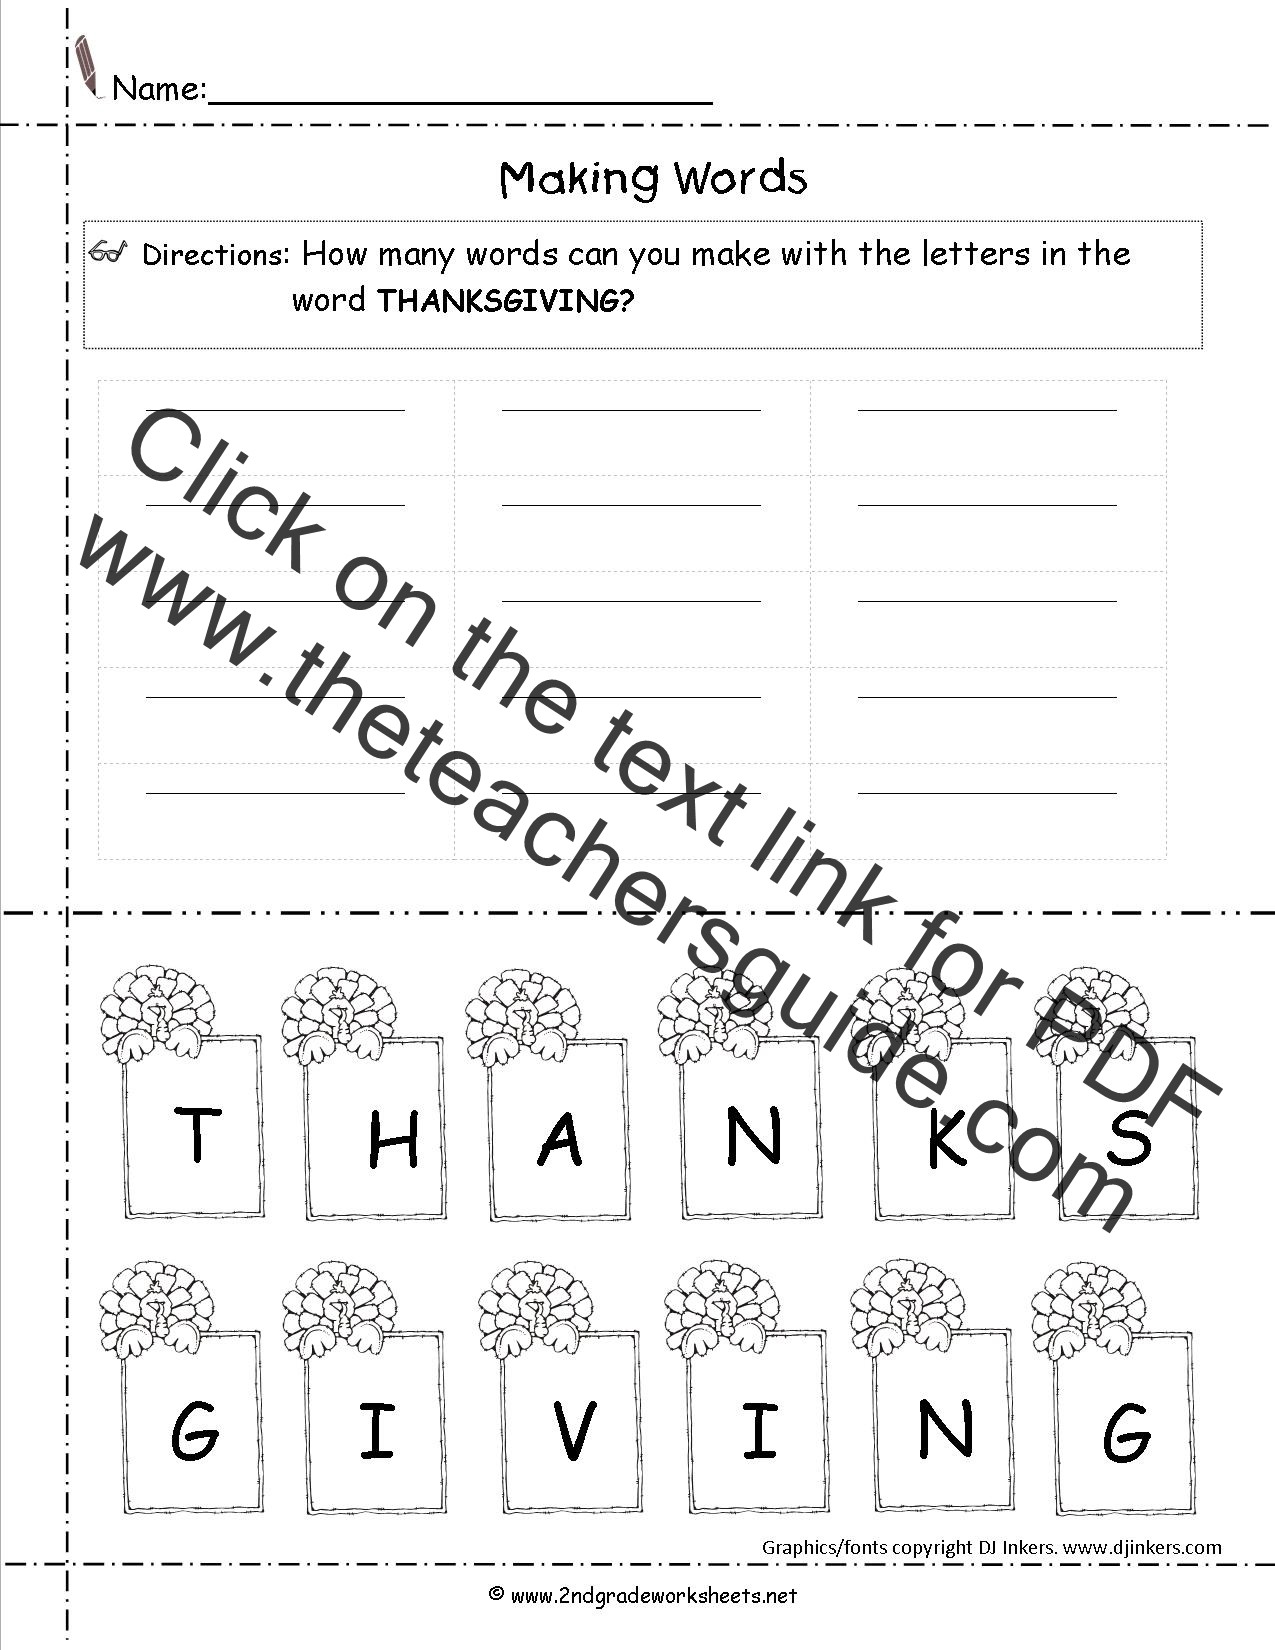 Thanksgiving Math Worksheets 5th Grade Thanksgiving Printouts and Worksheets Free Math for Second